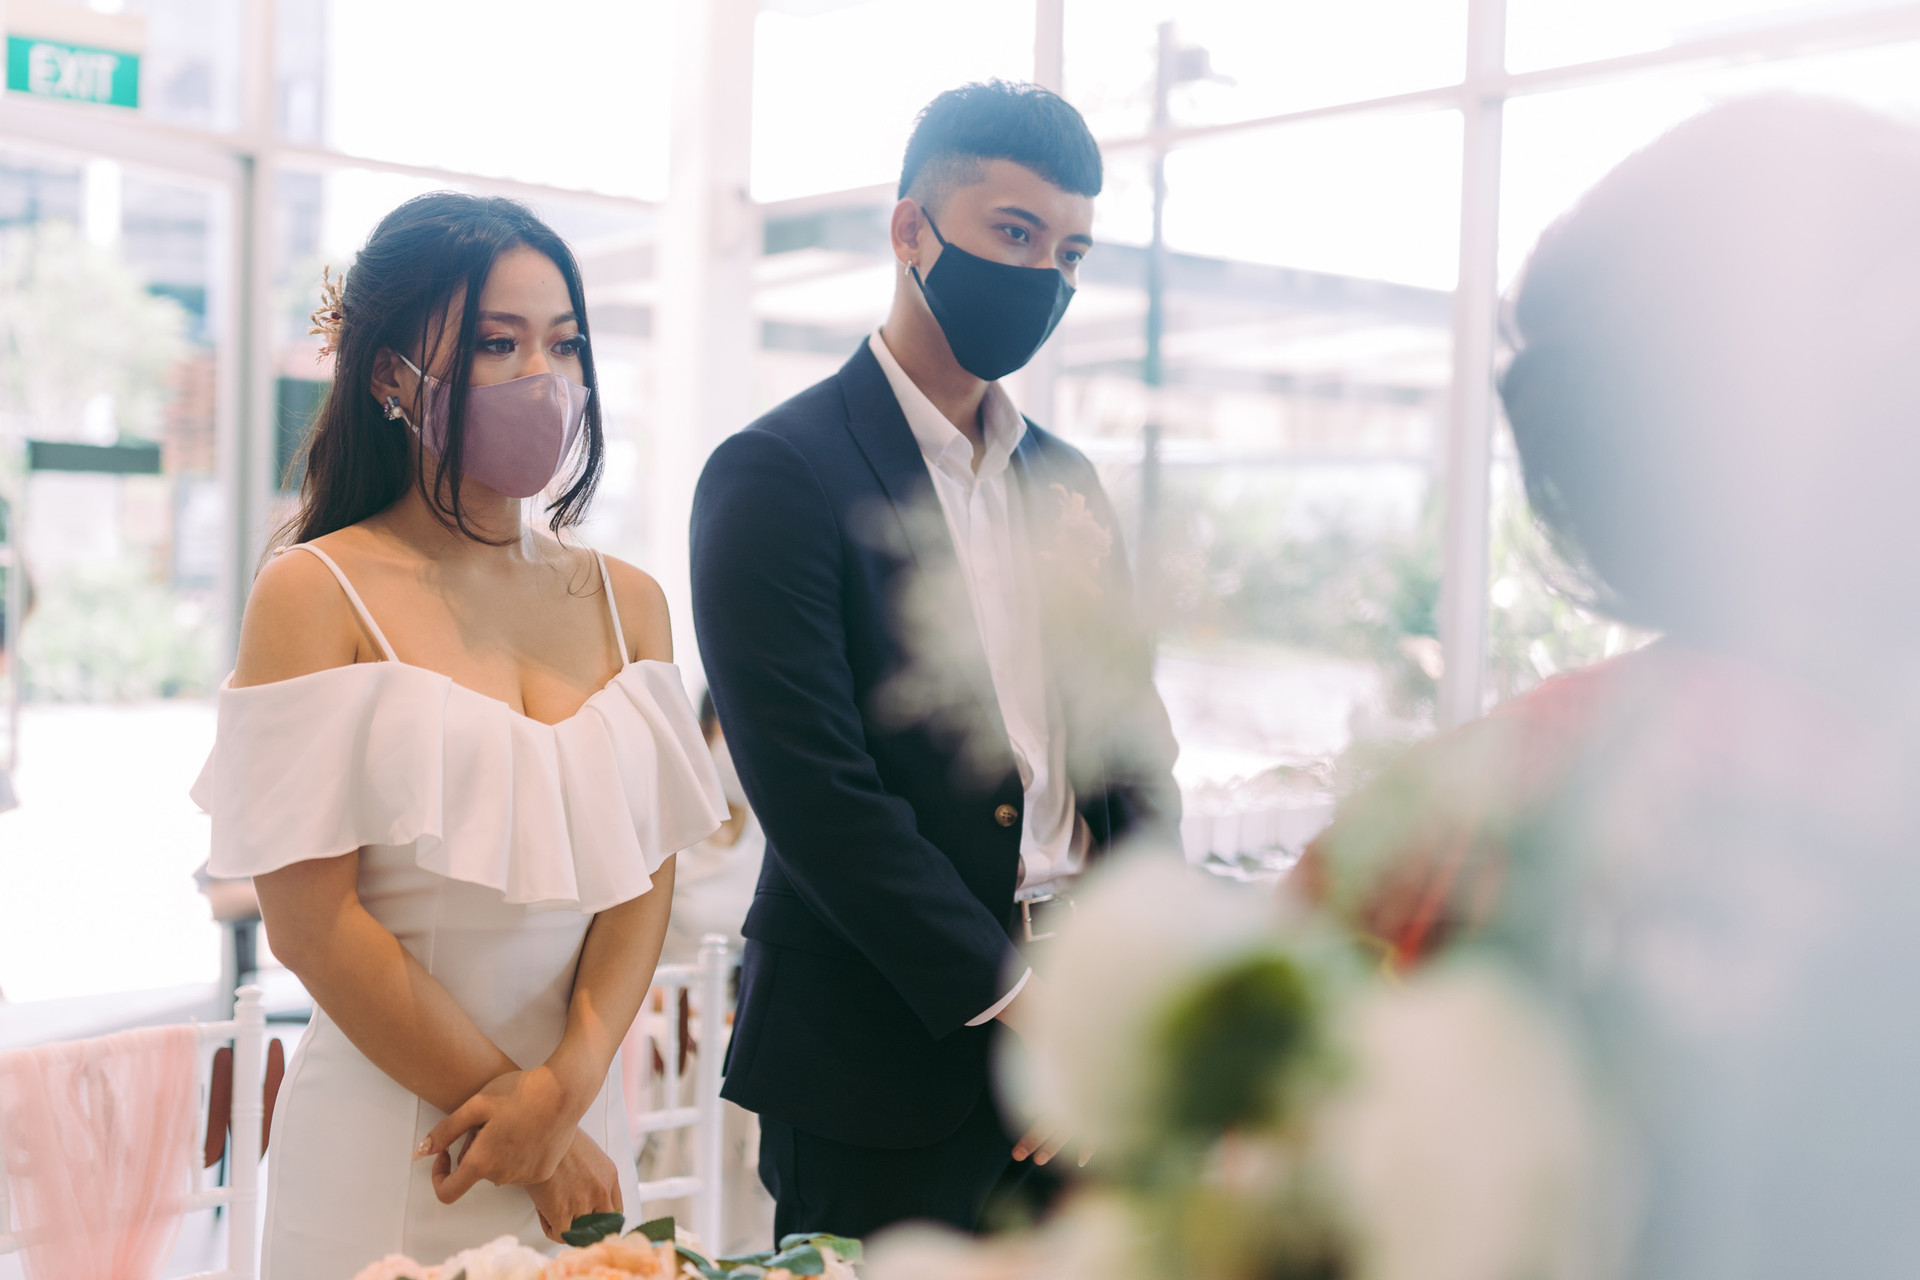 boonheng and jessica-166.jpg